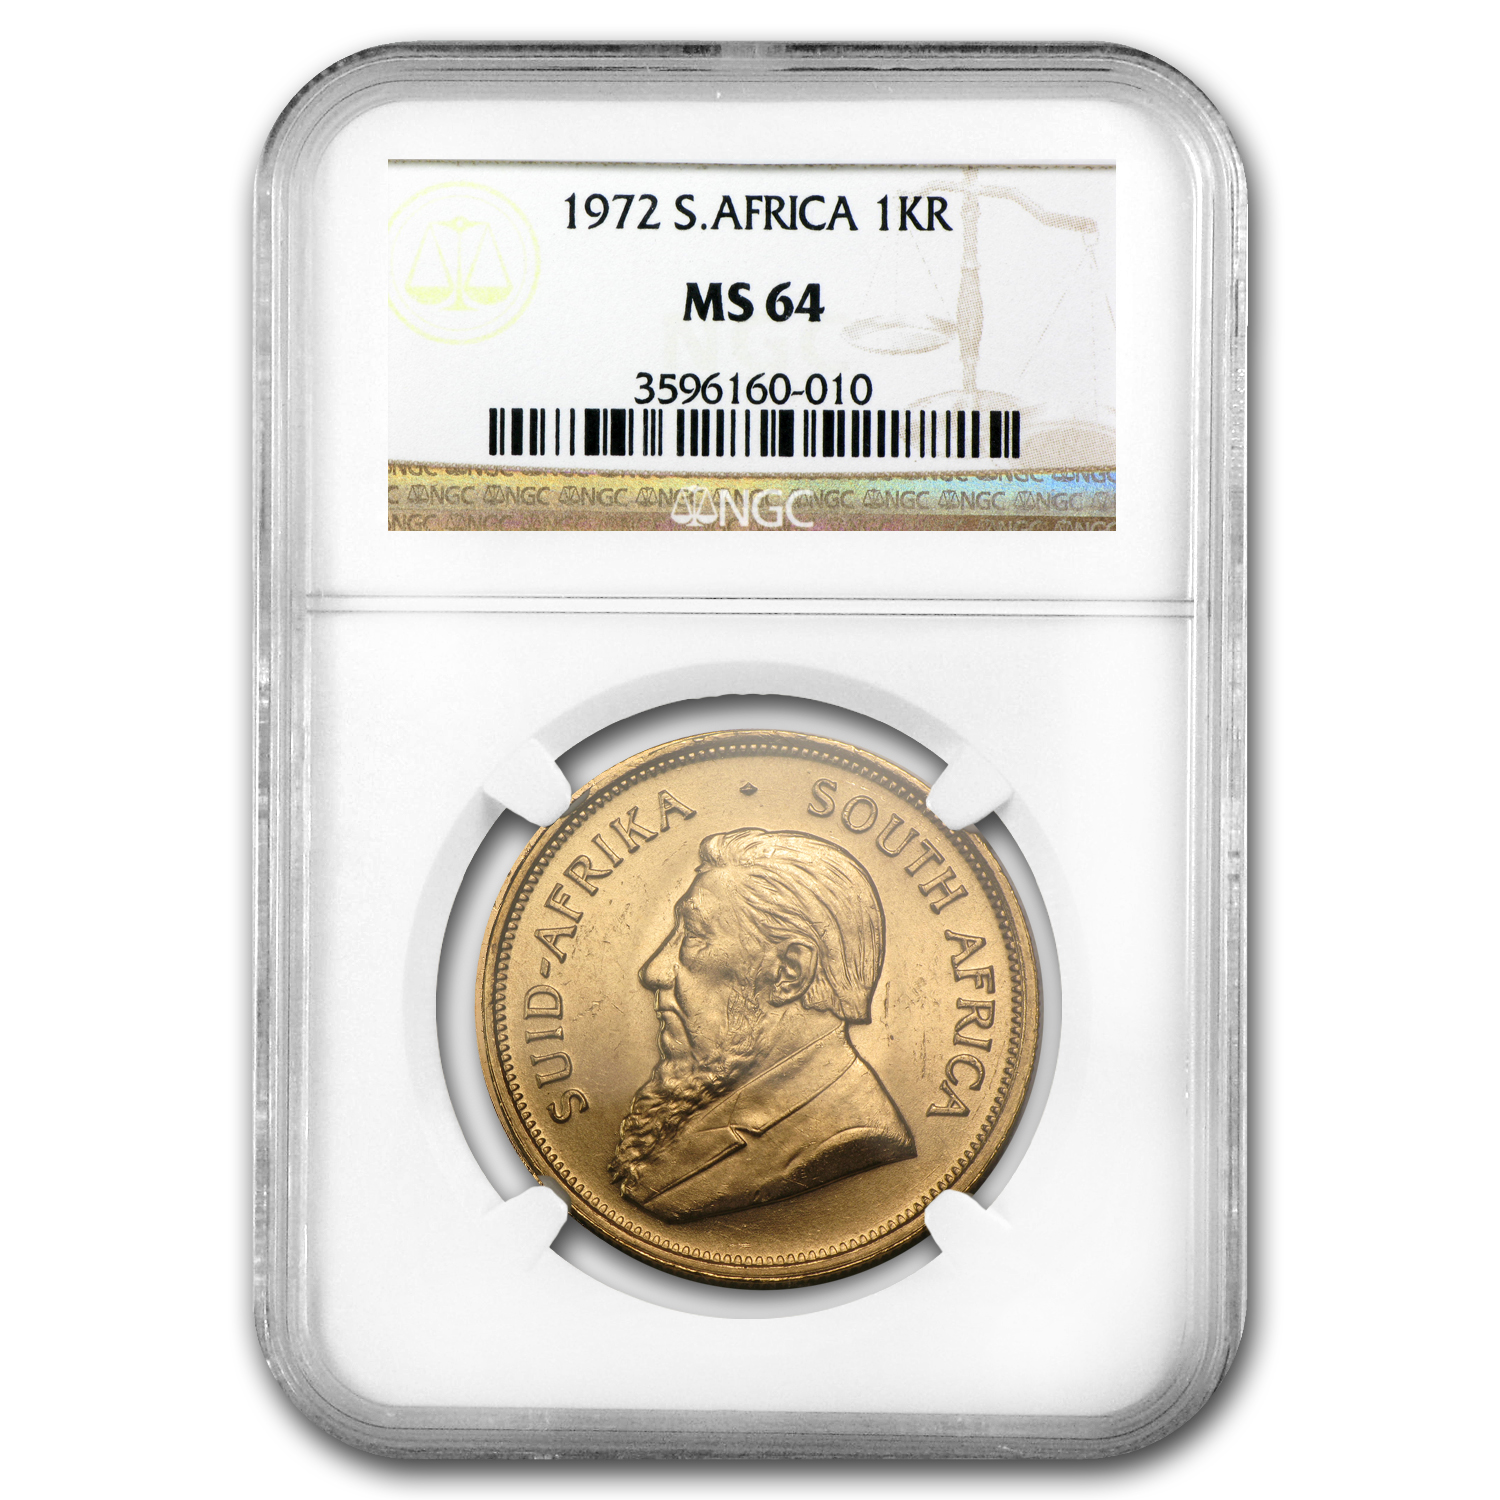 1972 1 oz Gold South African Krugerrand MS-64 NGC